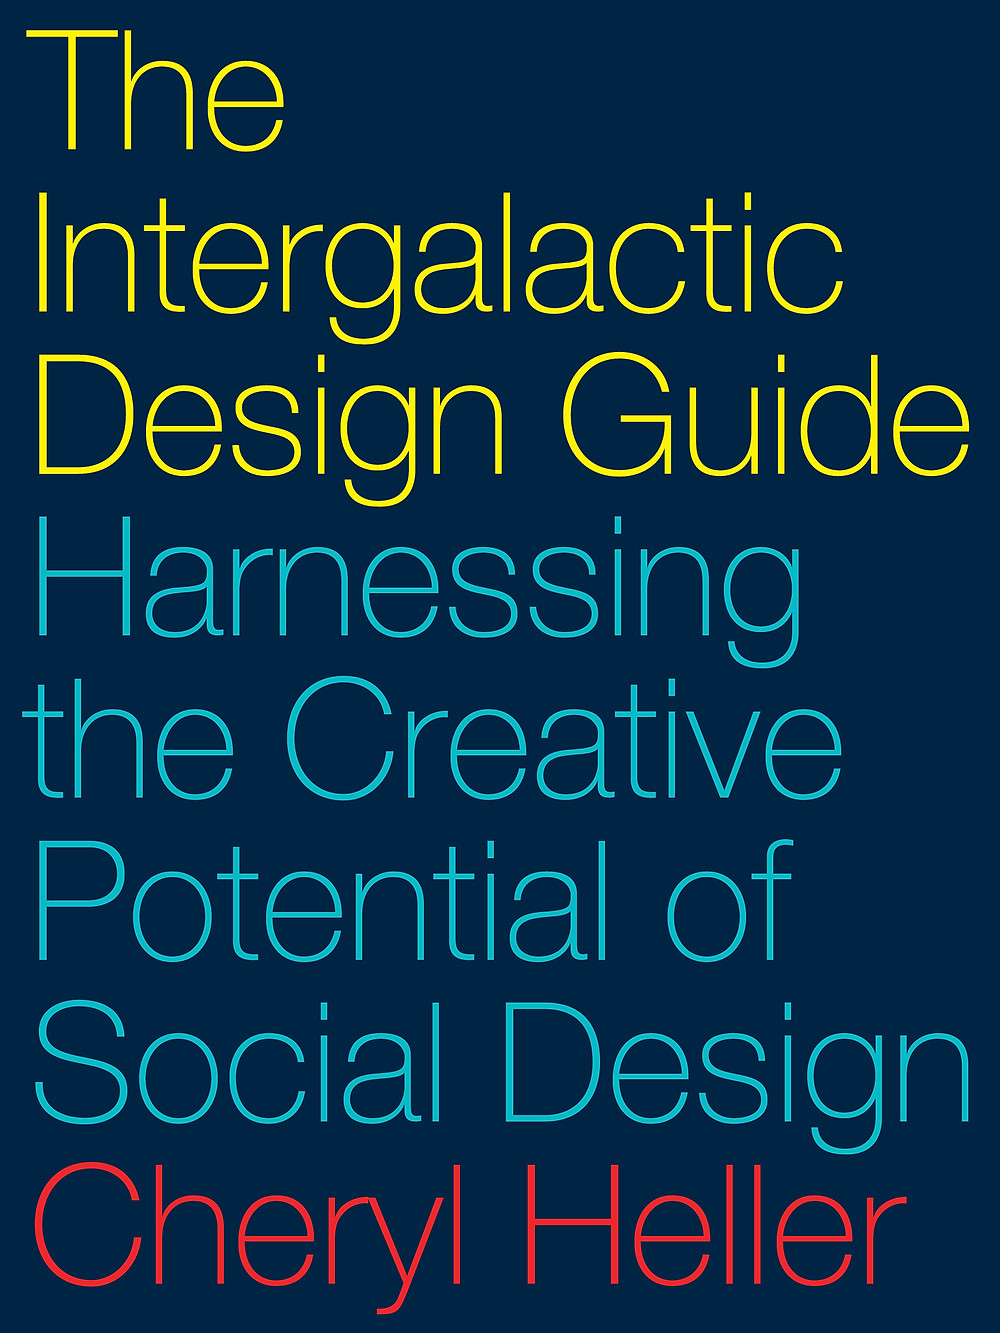 The Intergalactic Design Guide: Harnessing The Creative Potential of Social Design.